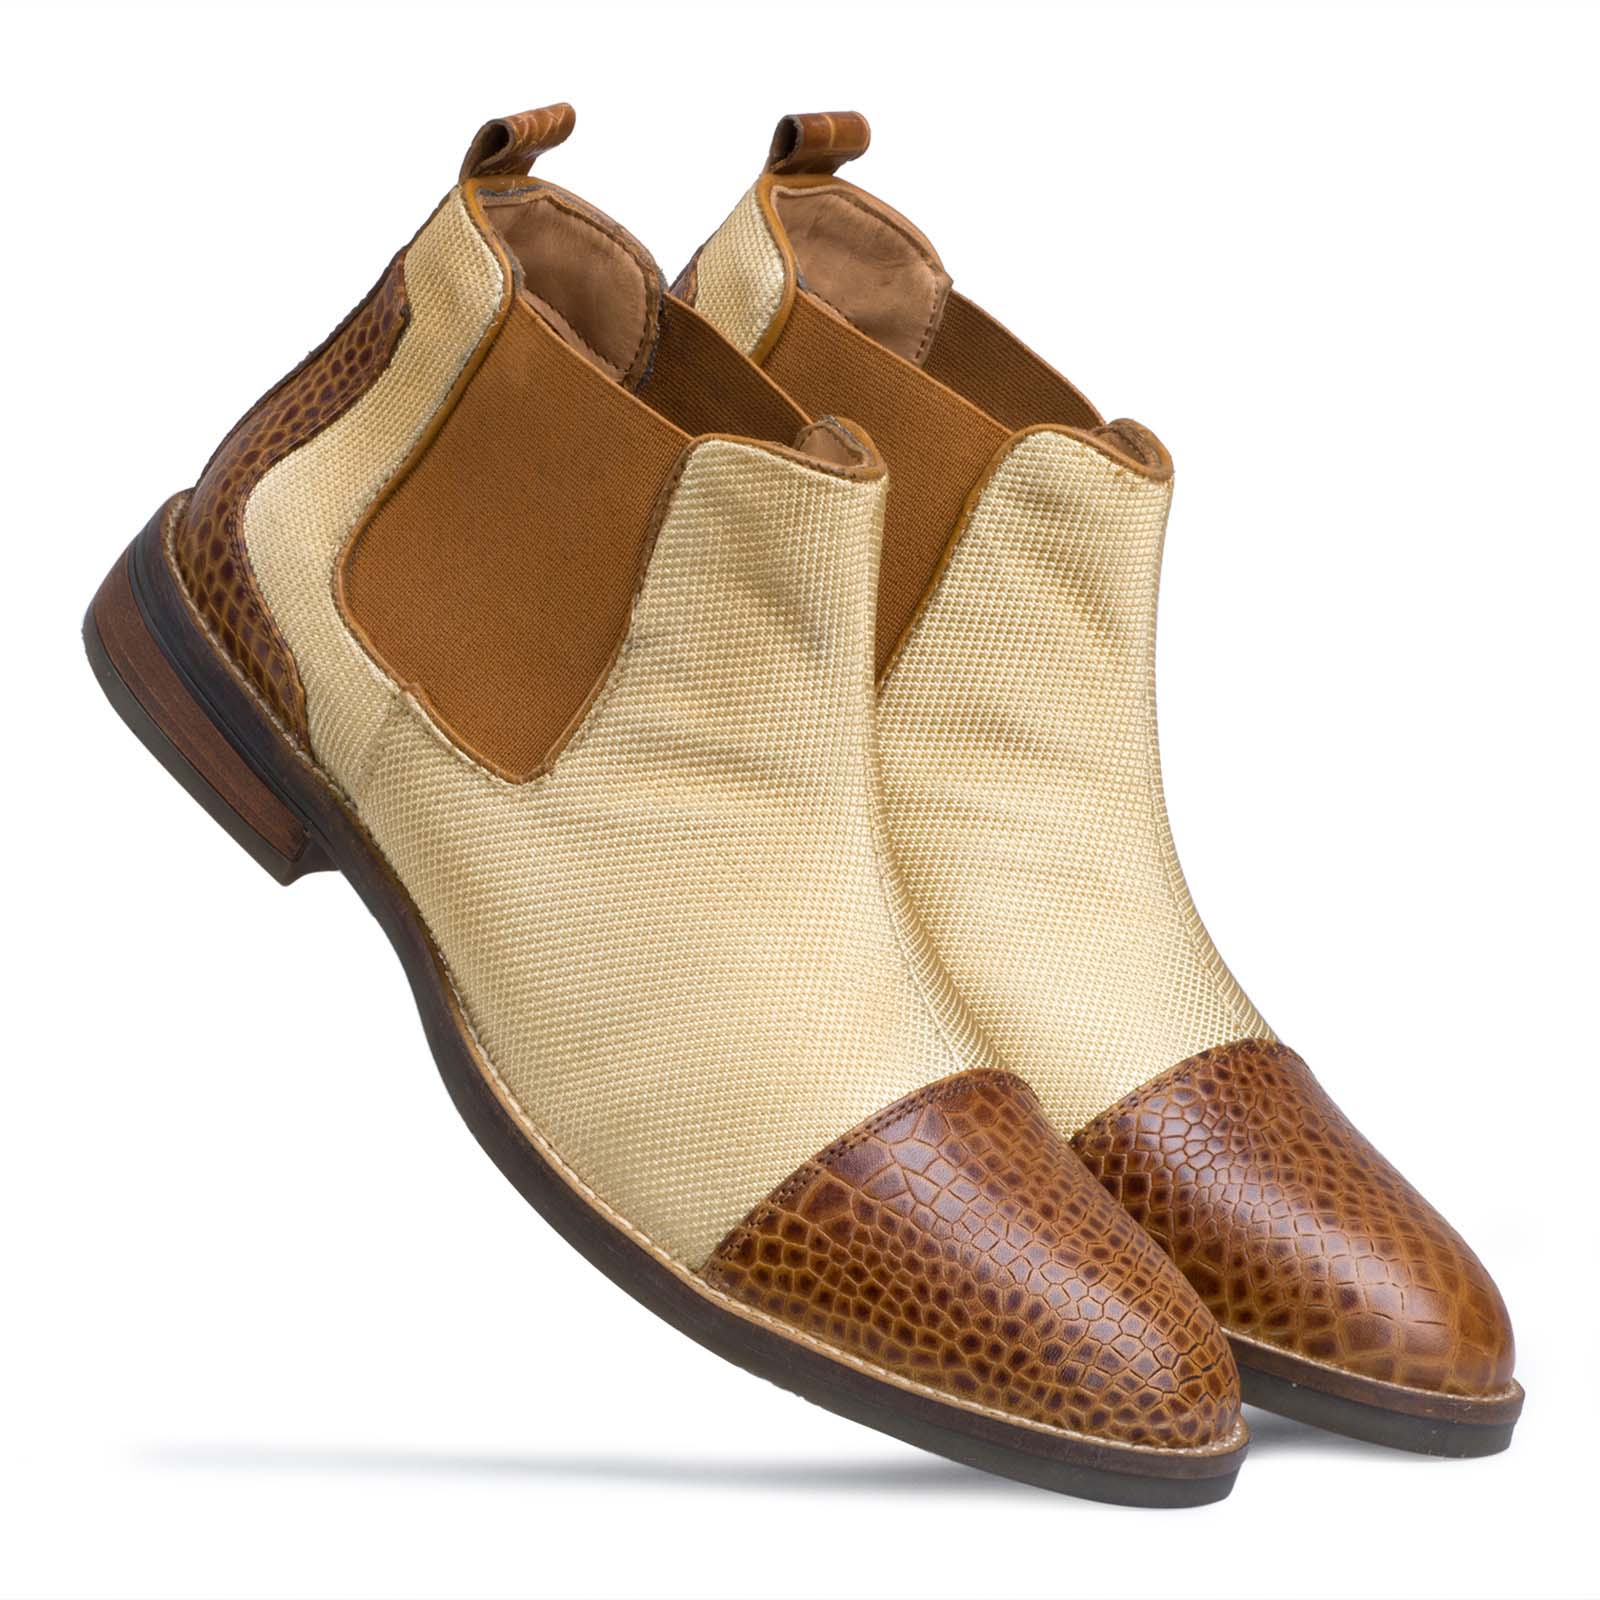 Camel-Brown Fabric Structured Chelsea boots